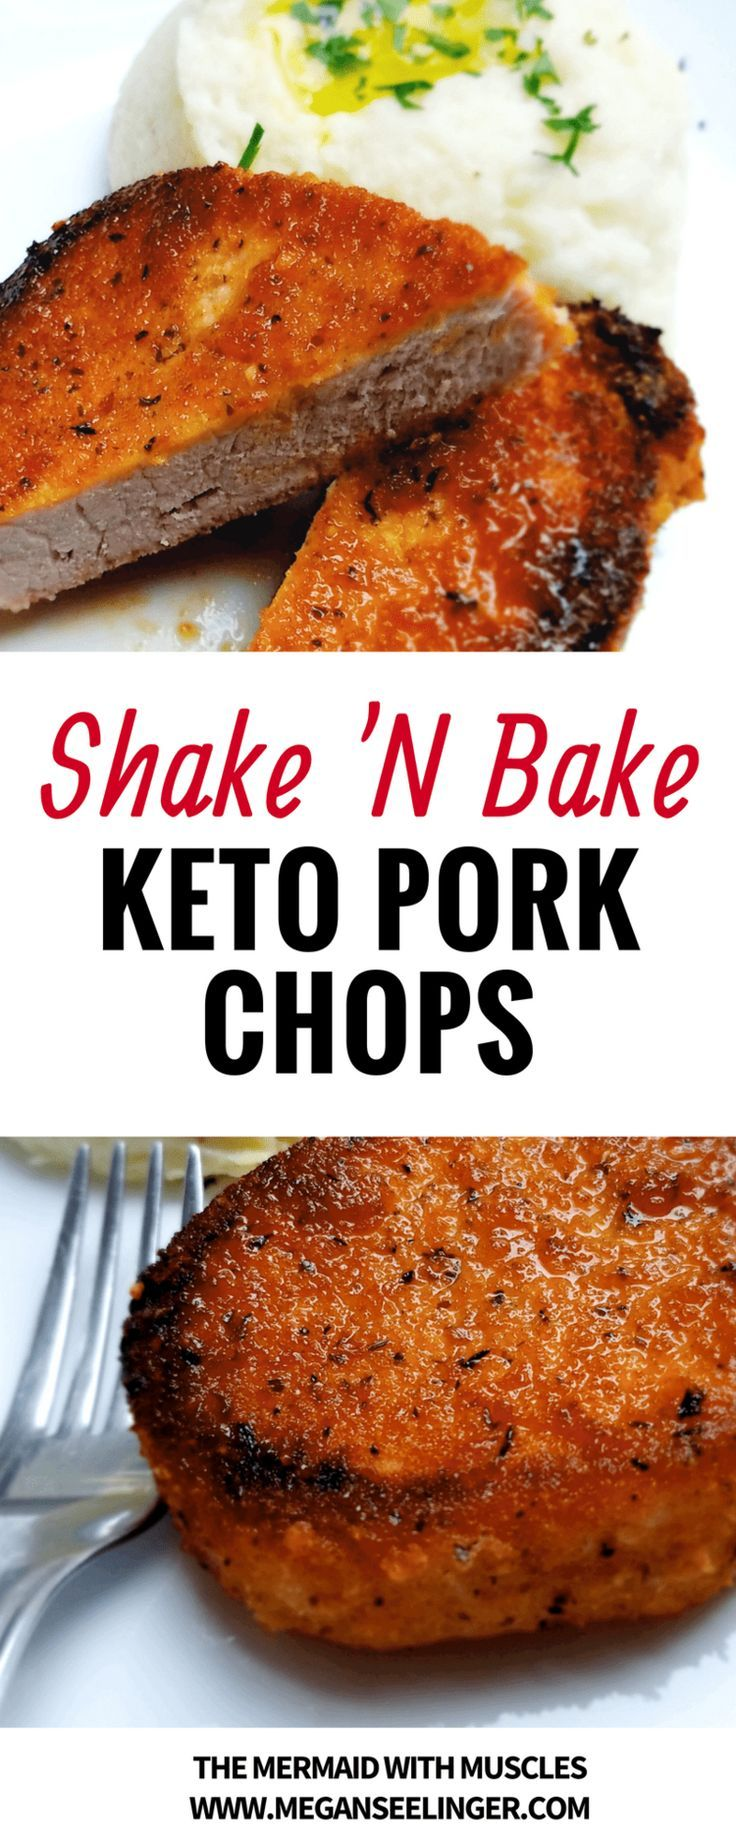 Easy Shake 'N Bake Keto Pork Chops | Keto | Pork chop recipes, Substitute for bread crumbs